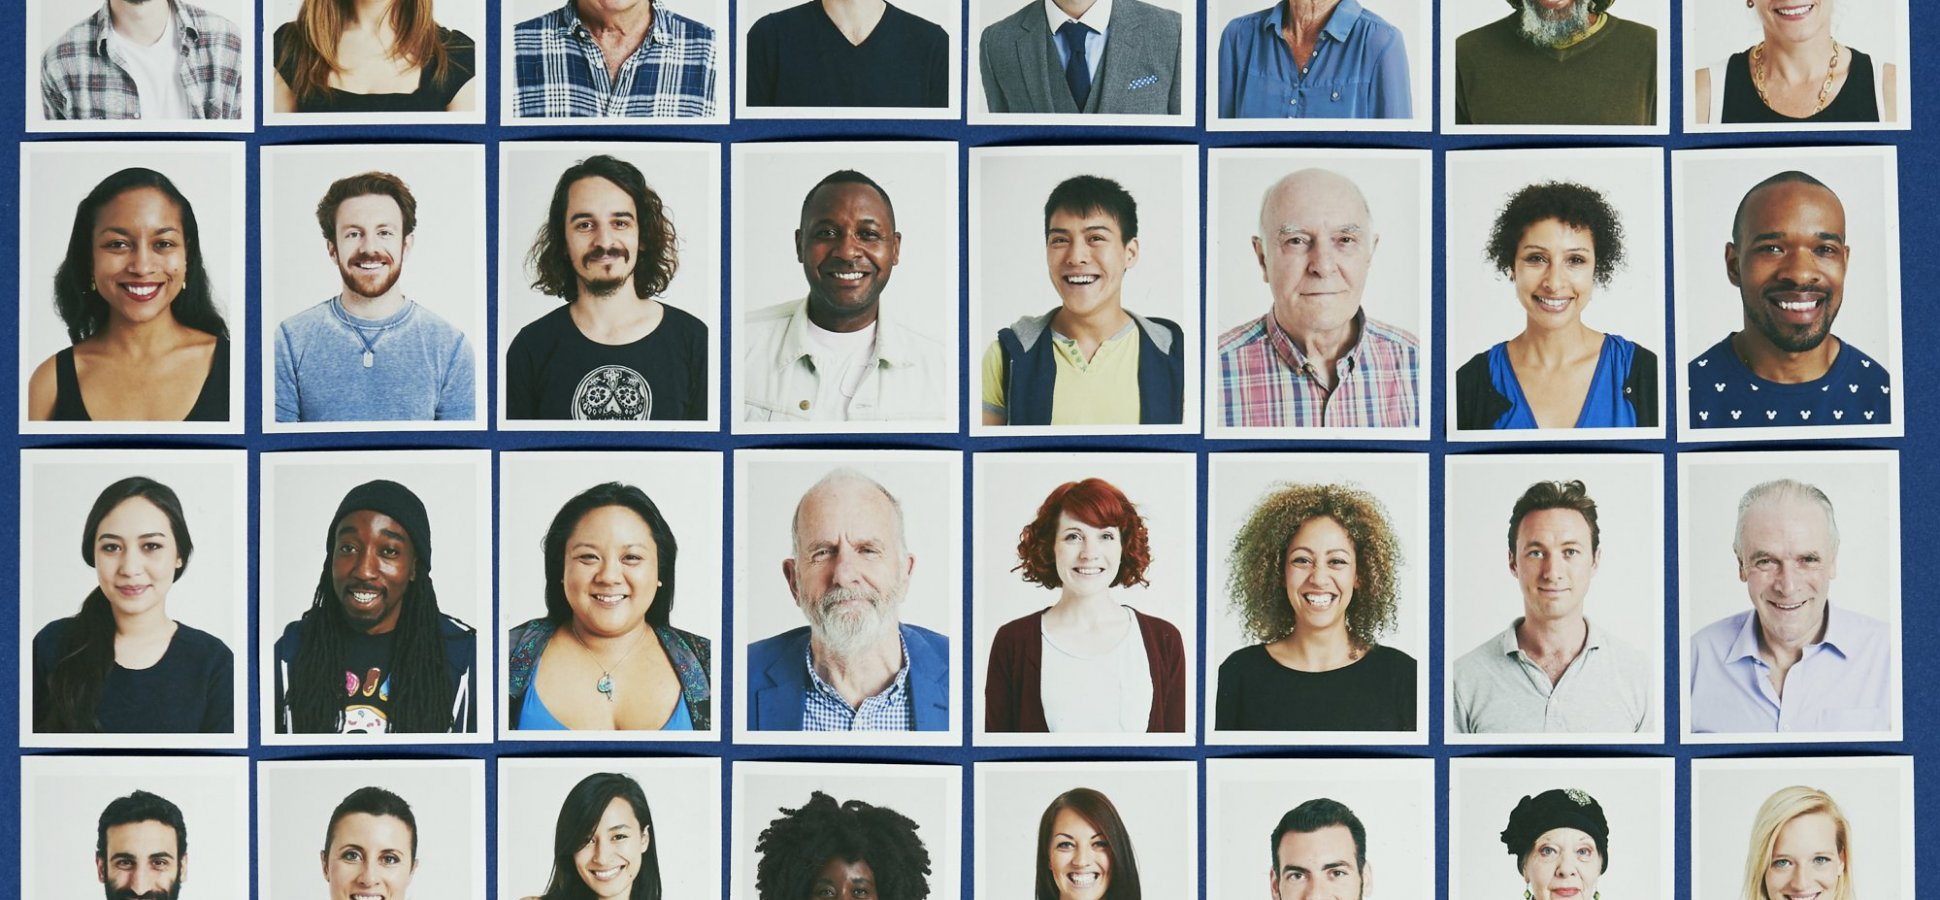 A Stunning Study of 1.5 Million People Reveals There Are Only 4 Personality Types (And Most People Are the Same Type)